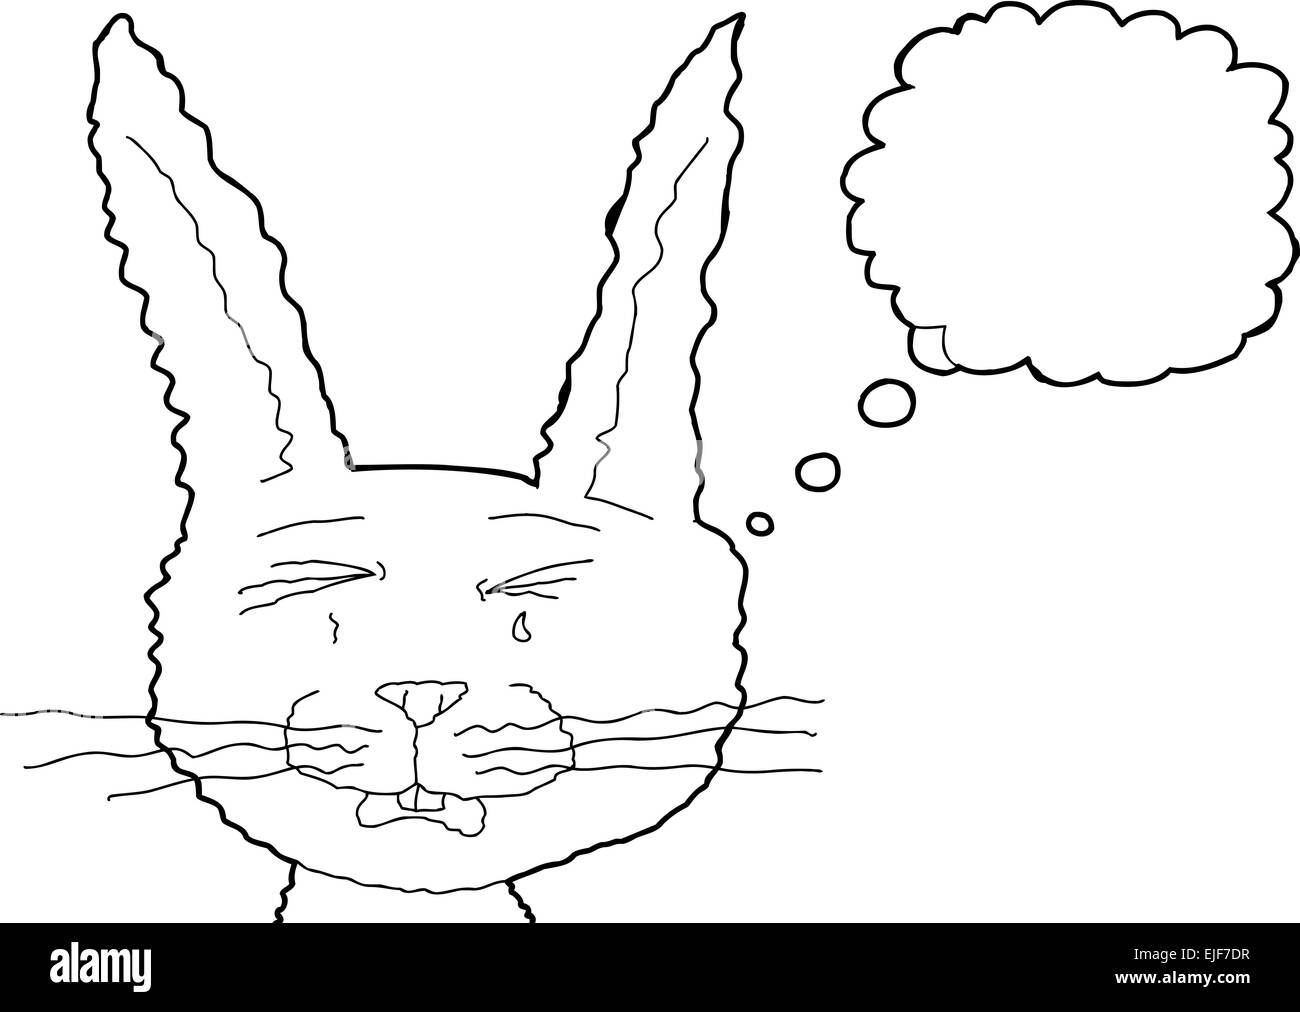 Sad outlined fuzzy cartoon bunny rabbit with tears - Stock Image